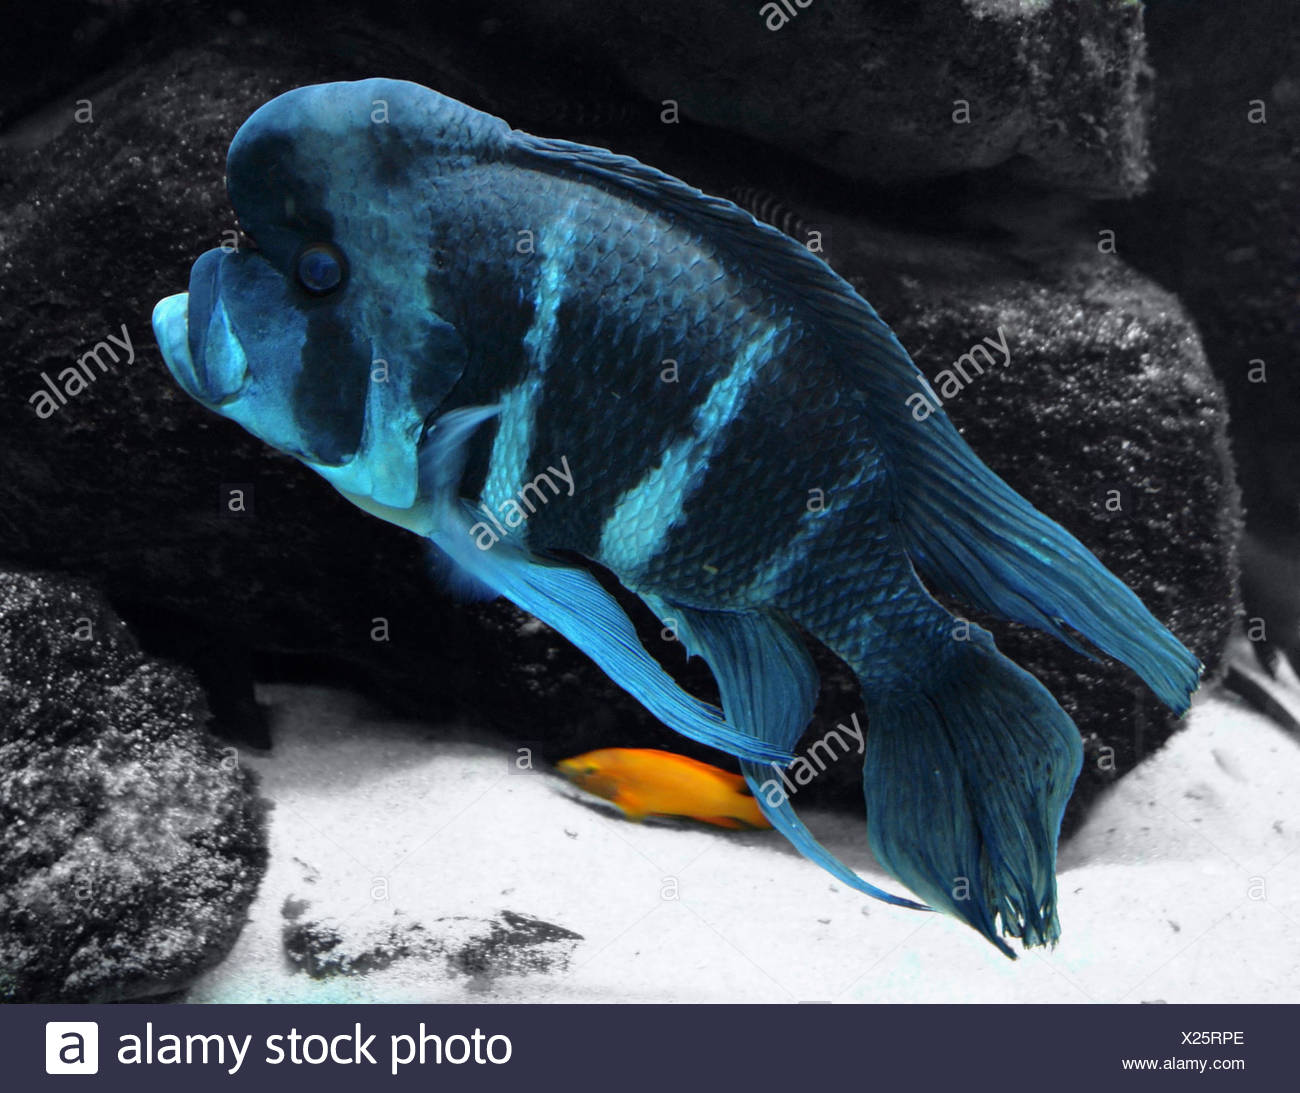 underwater scenery showing a big blue striped Cichlid in front of some dark stones - Stock Image